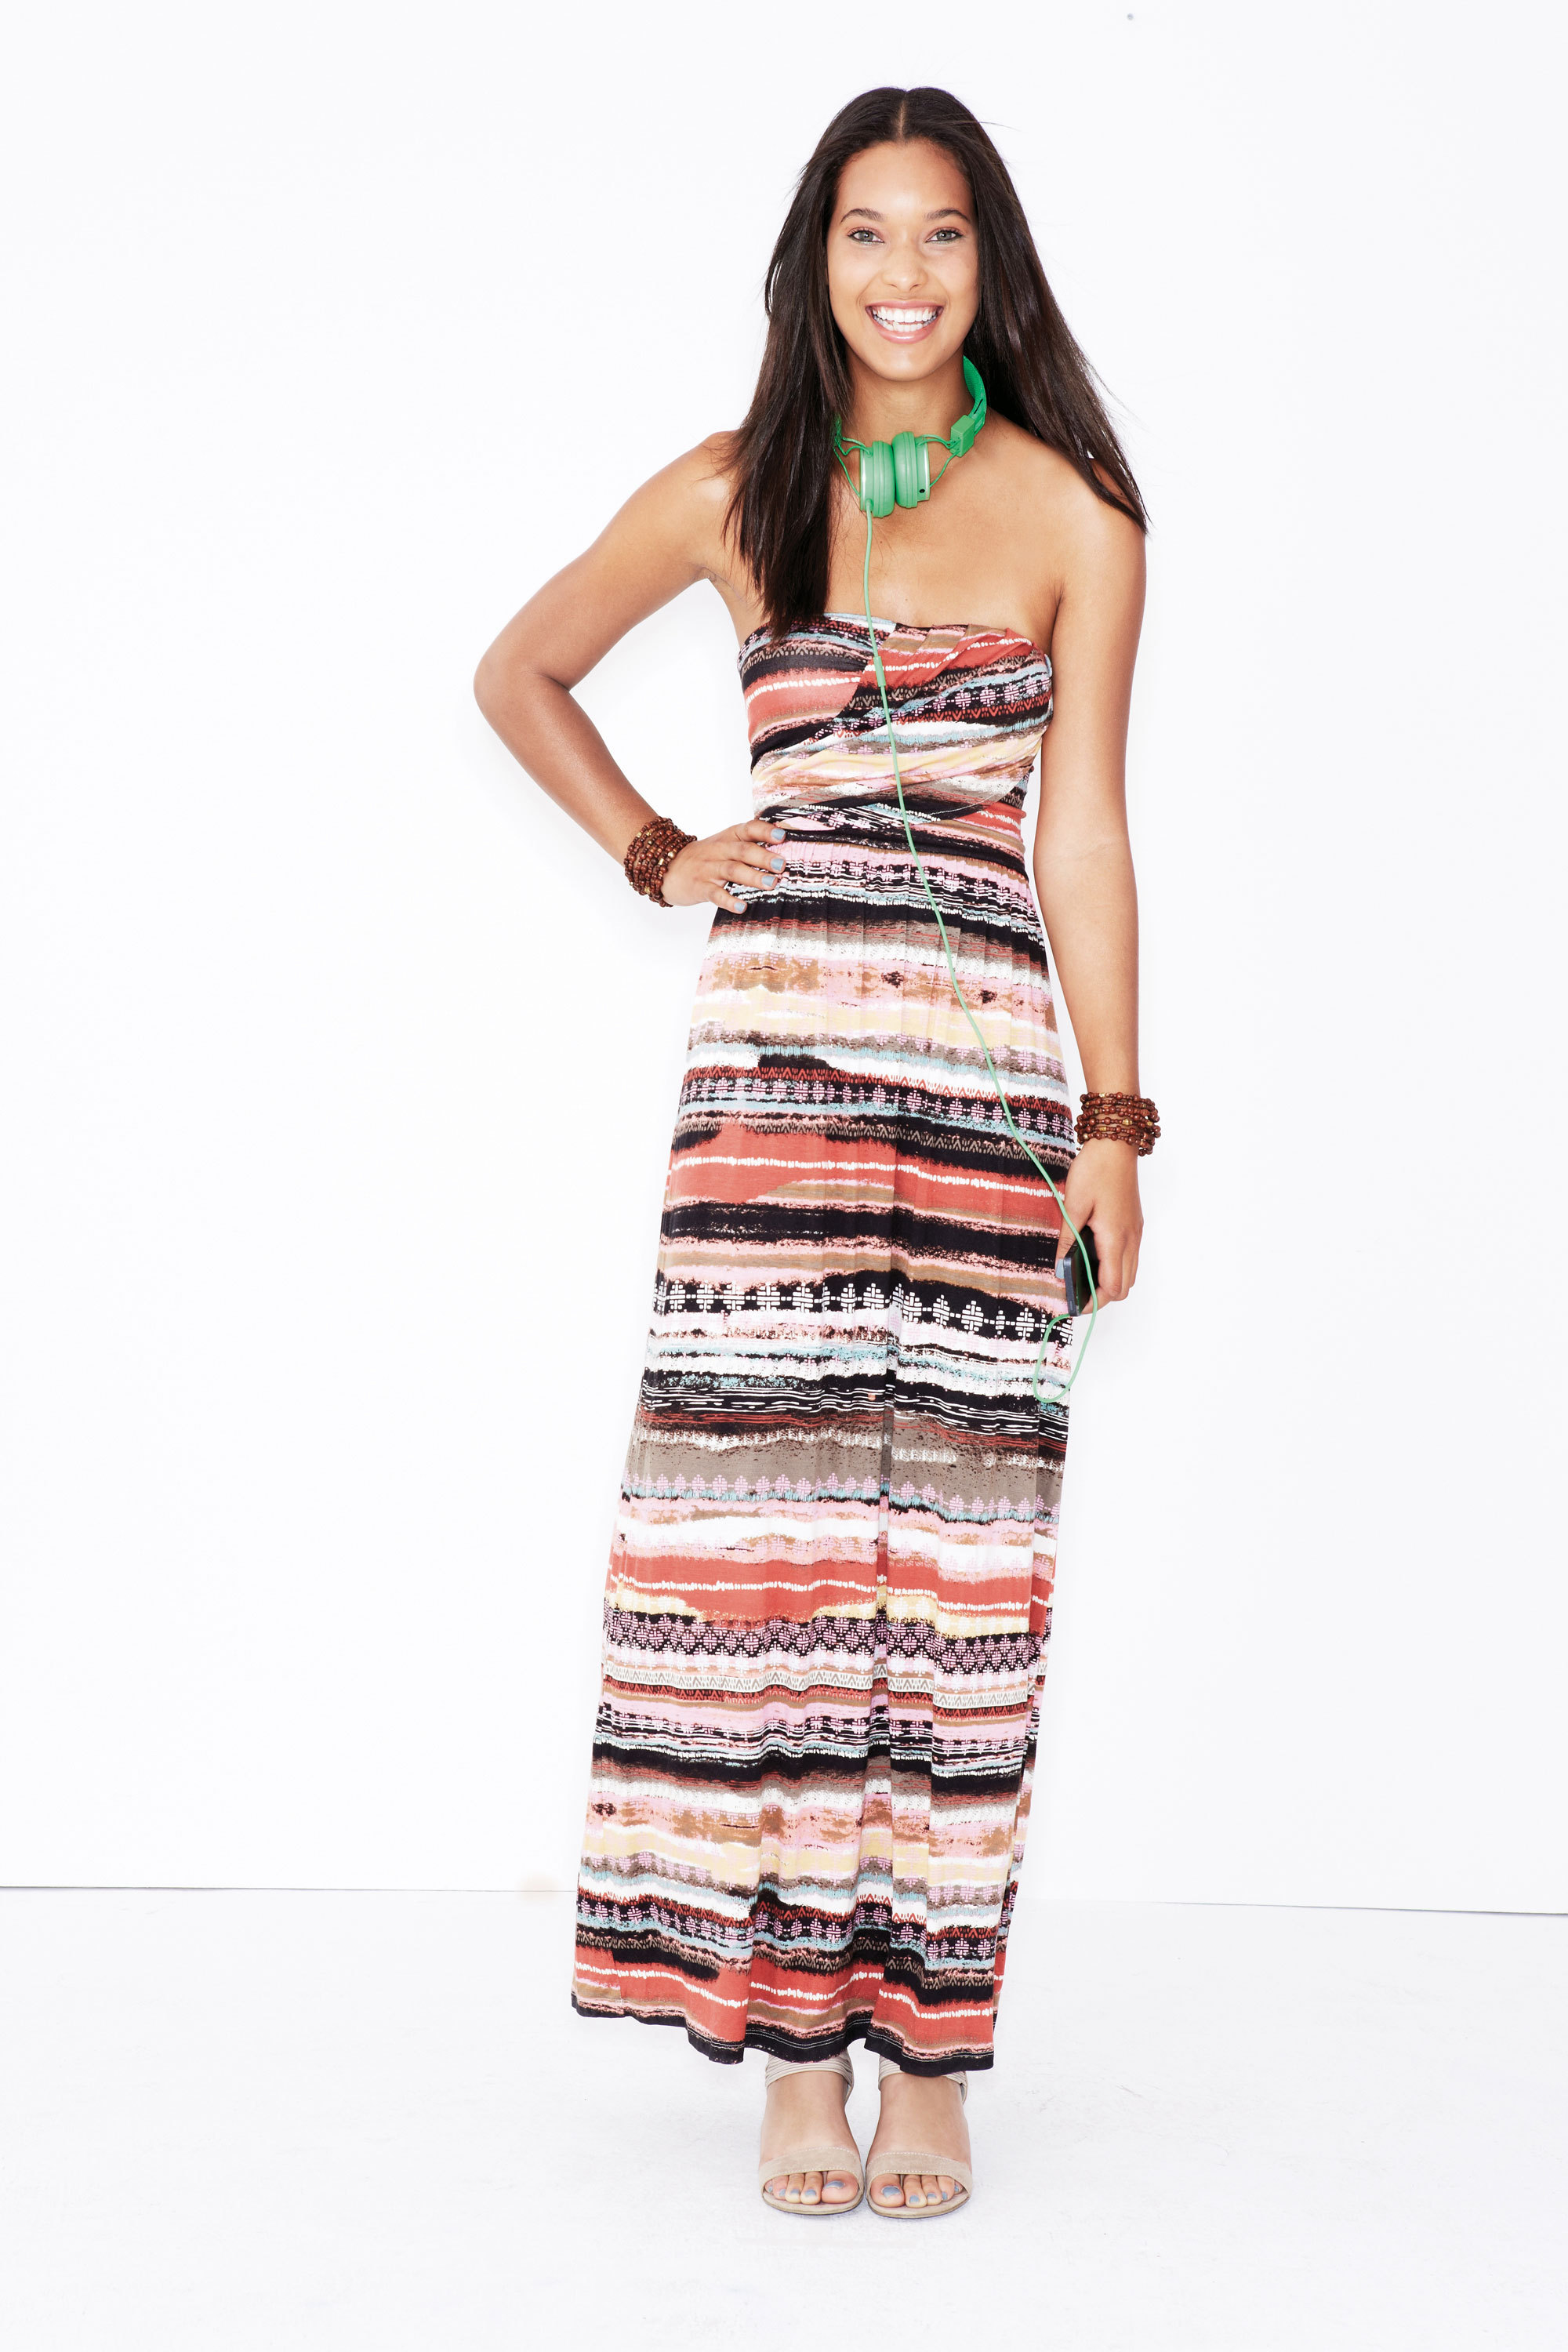 Shop Macy's for the best in style and savings this Back-to-School season; American Rag Maxi Dress $49.50 (Photo: Business Wire)